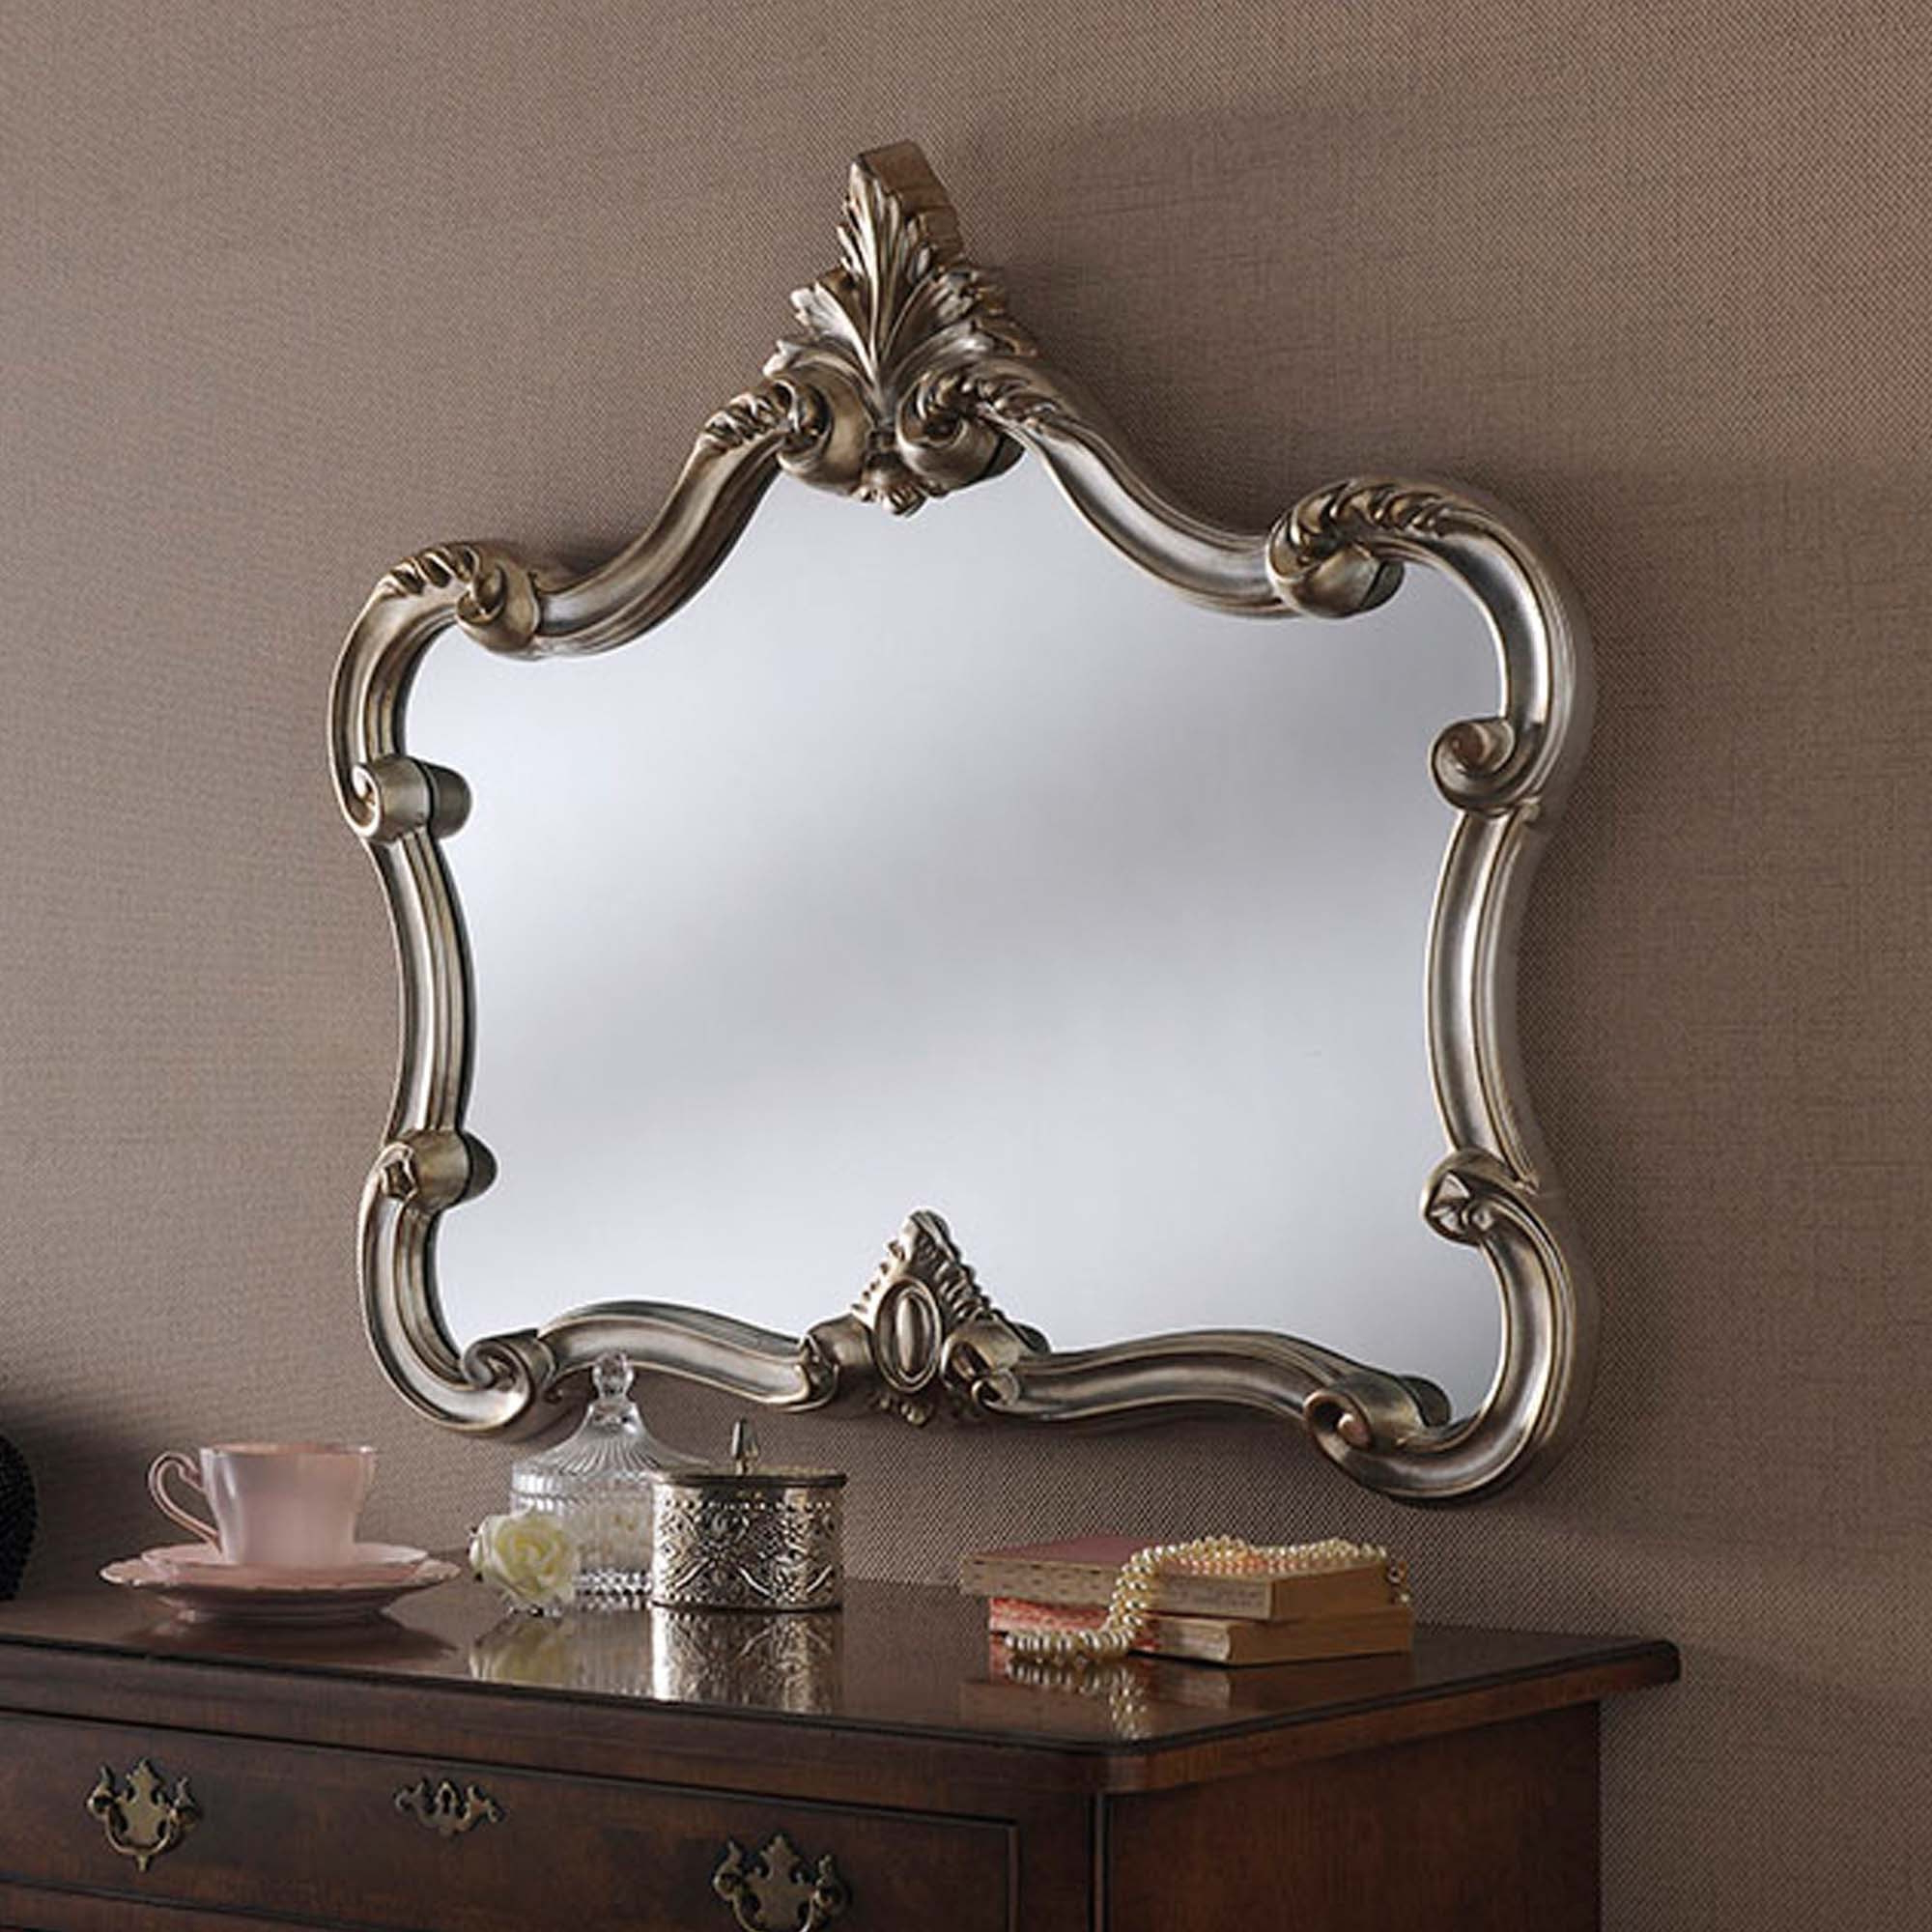 2019 Ornate Wall Mirrors With Regard To Antique French Style Silver Ornate Wall Mirror (View 11 of 20)